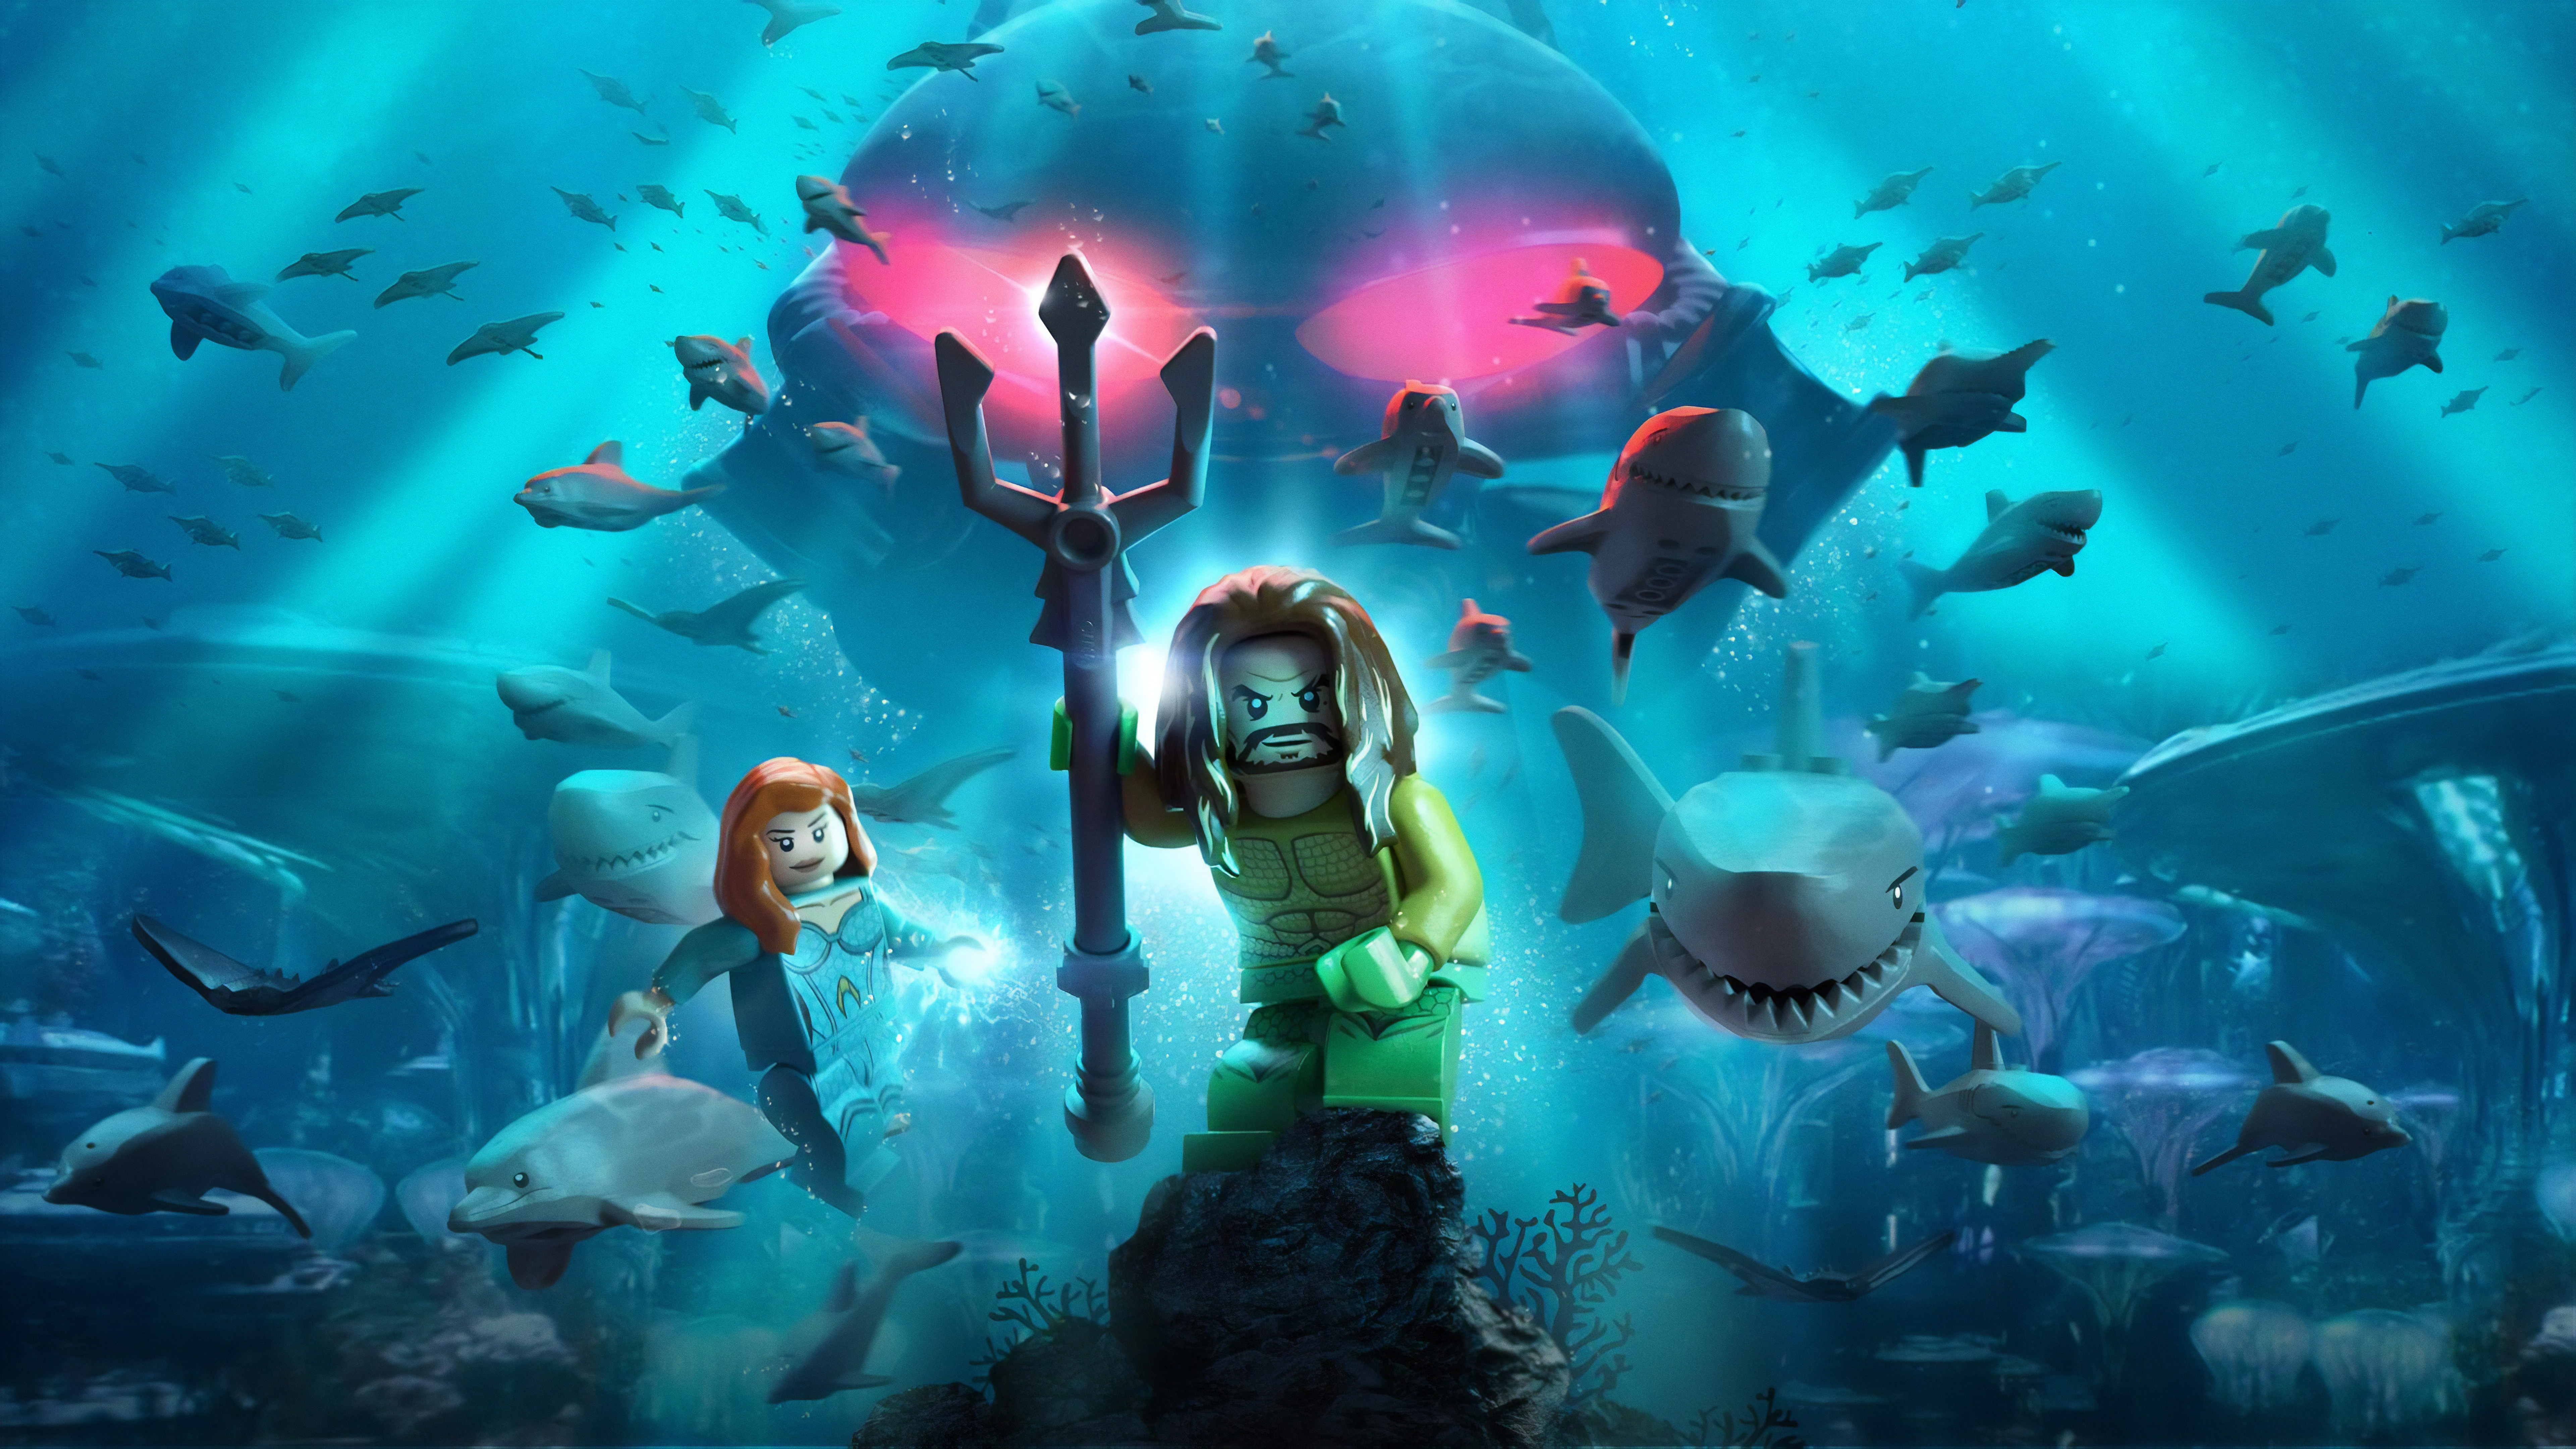 Lego Aquaman Poster 8k Hd Movies 4k Wallpapers Images Backgrounds Photos And Pictures